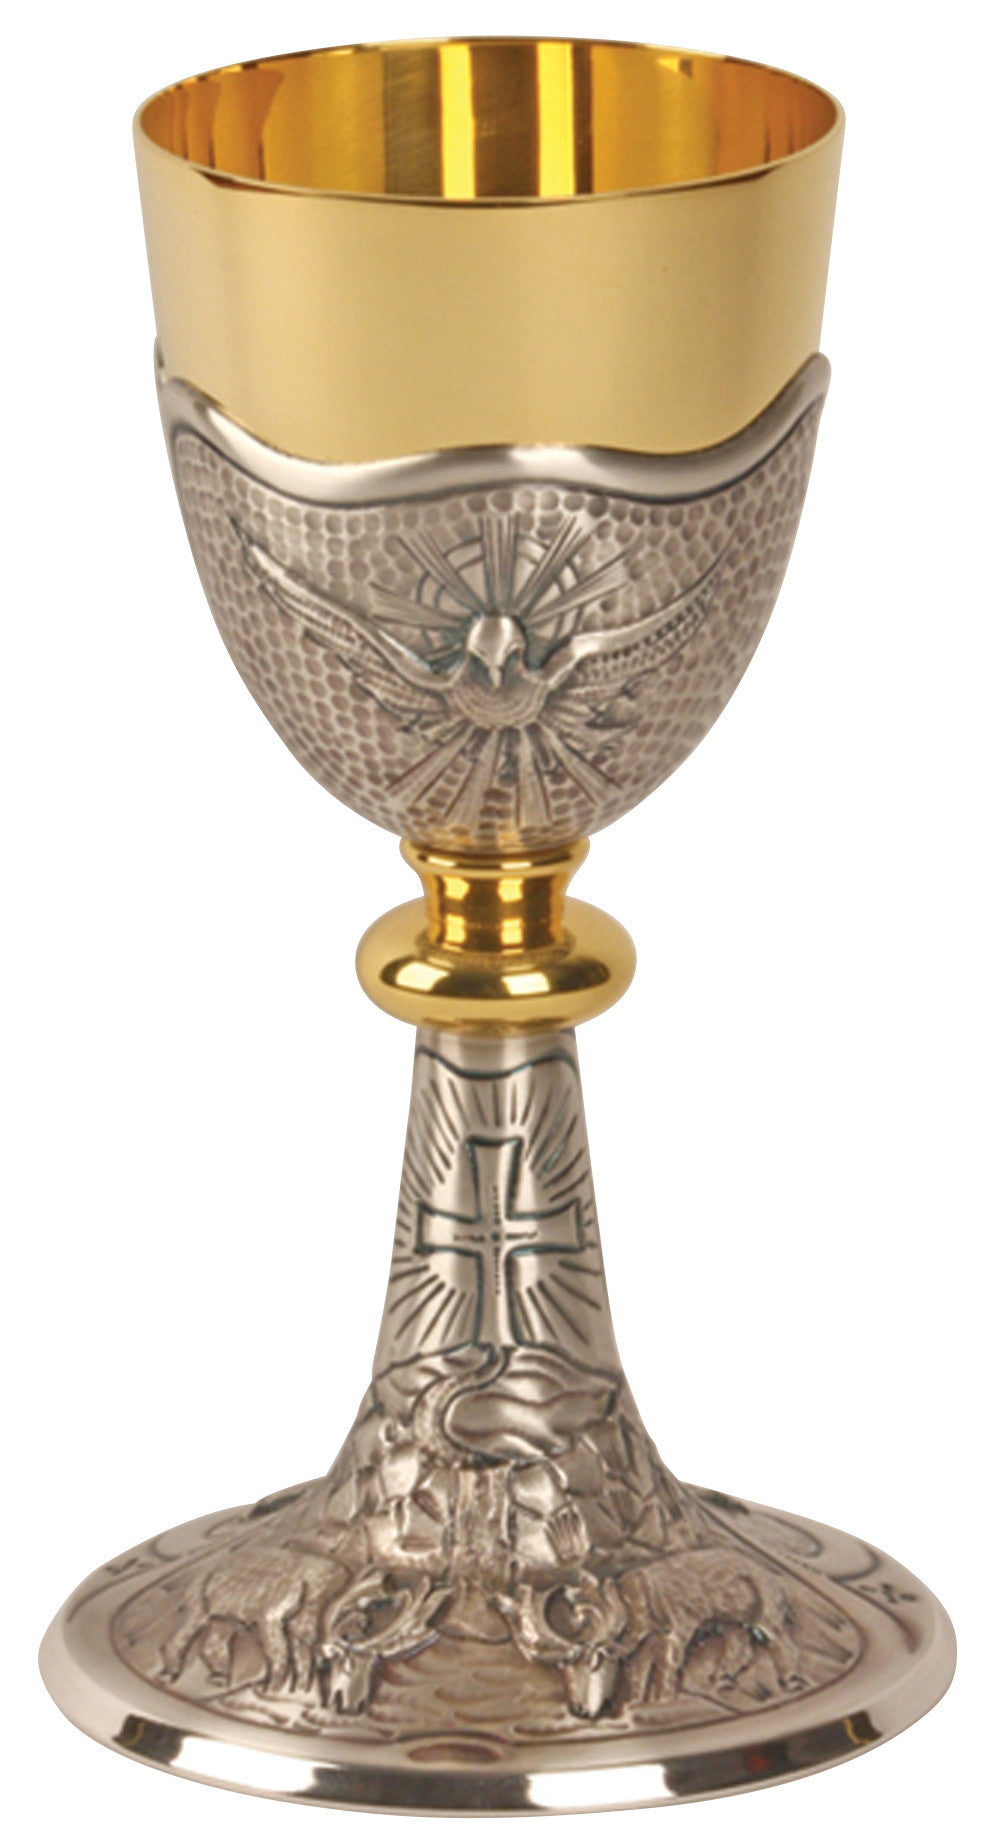 Chalice and Ciborium - Gold plated and Silver - Holy Spirit/Grapes/Leaf